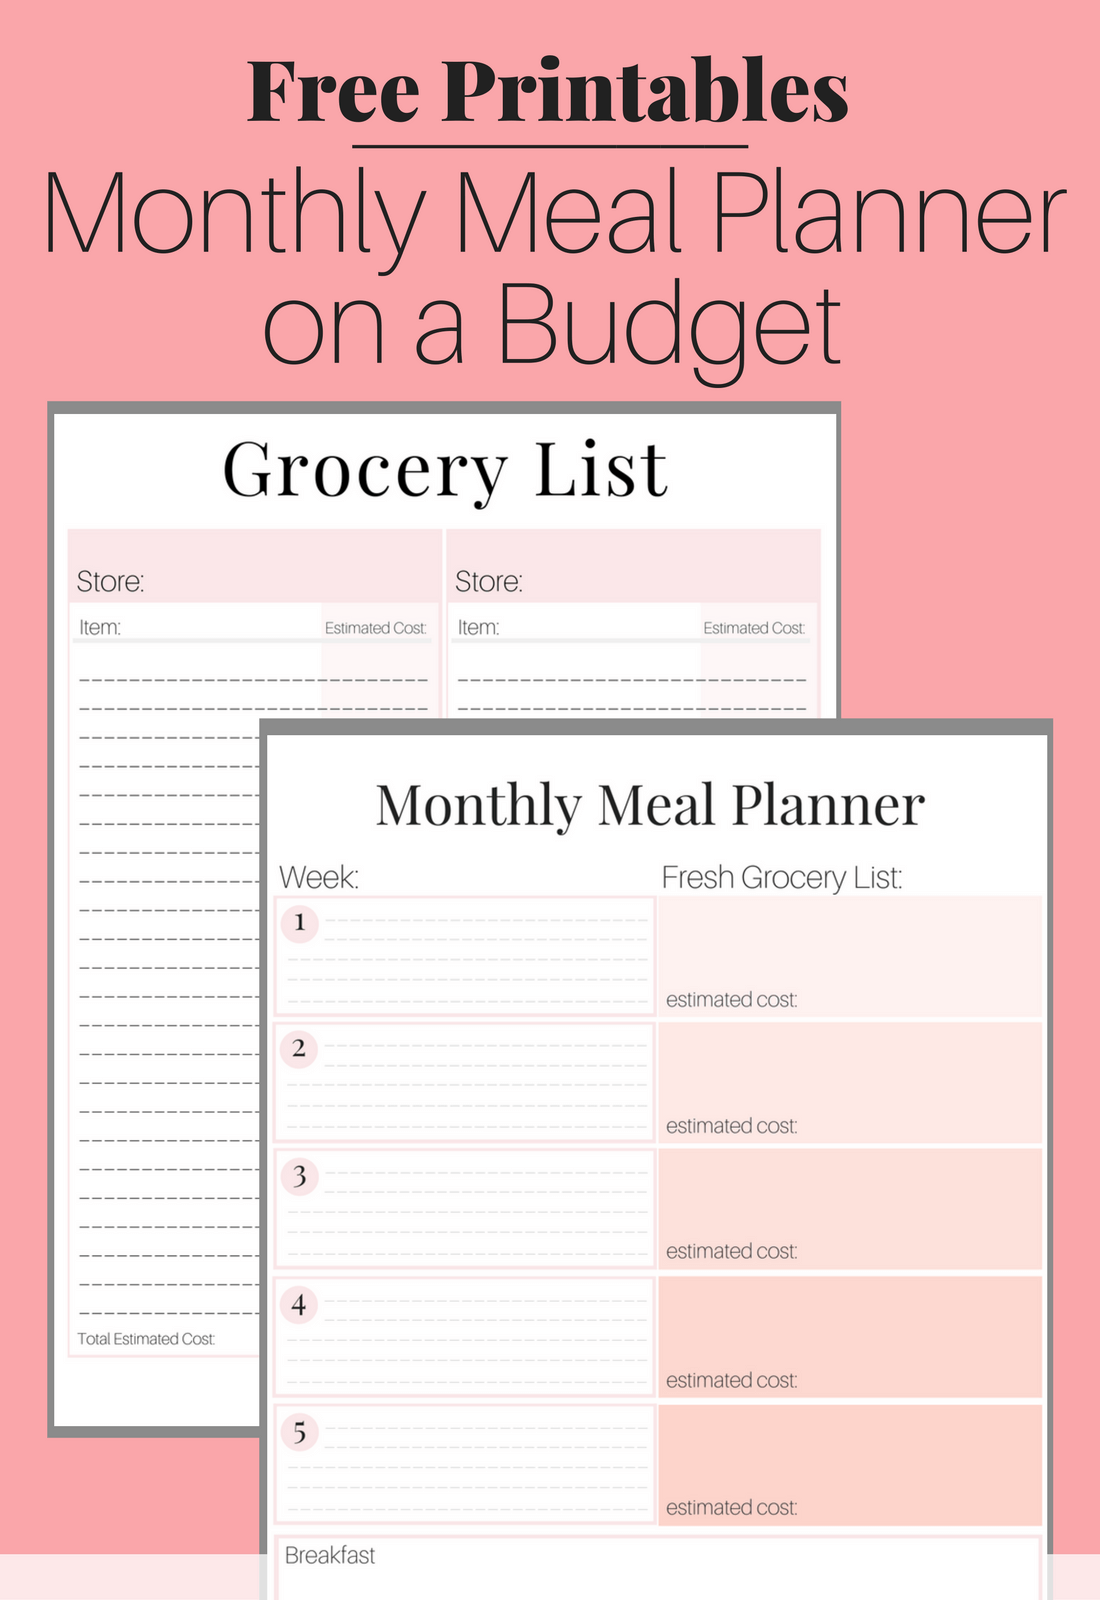 groceries list on a budget